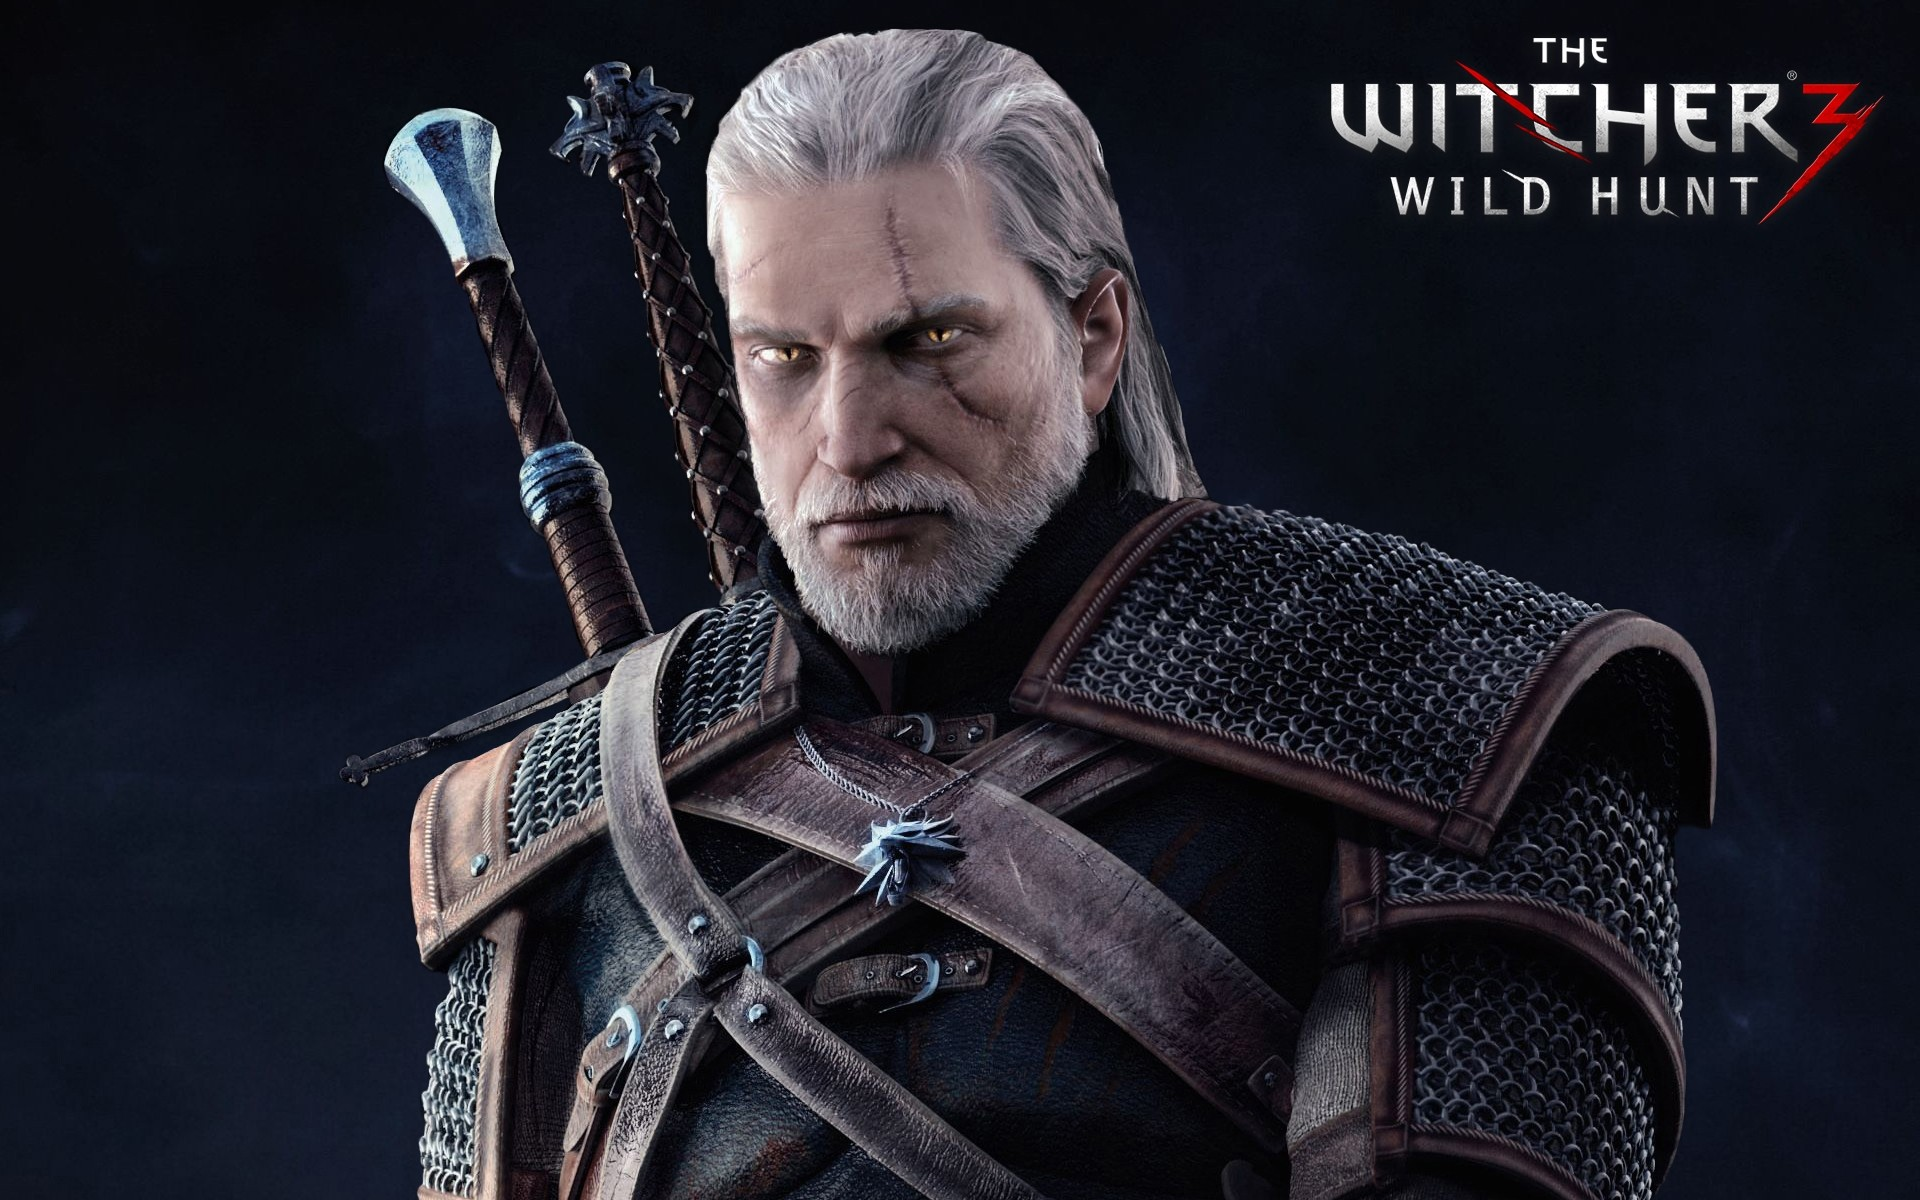 the witcher 3 wild hunt game android wallpapers for free